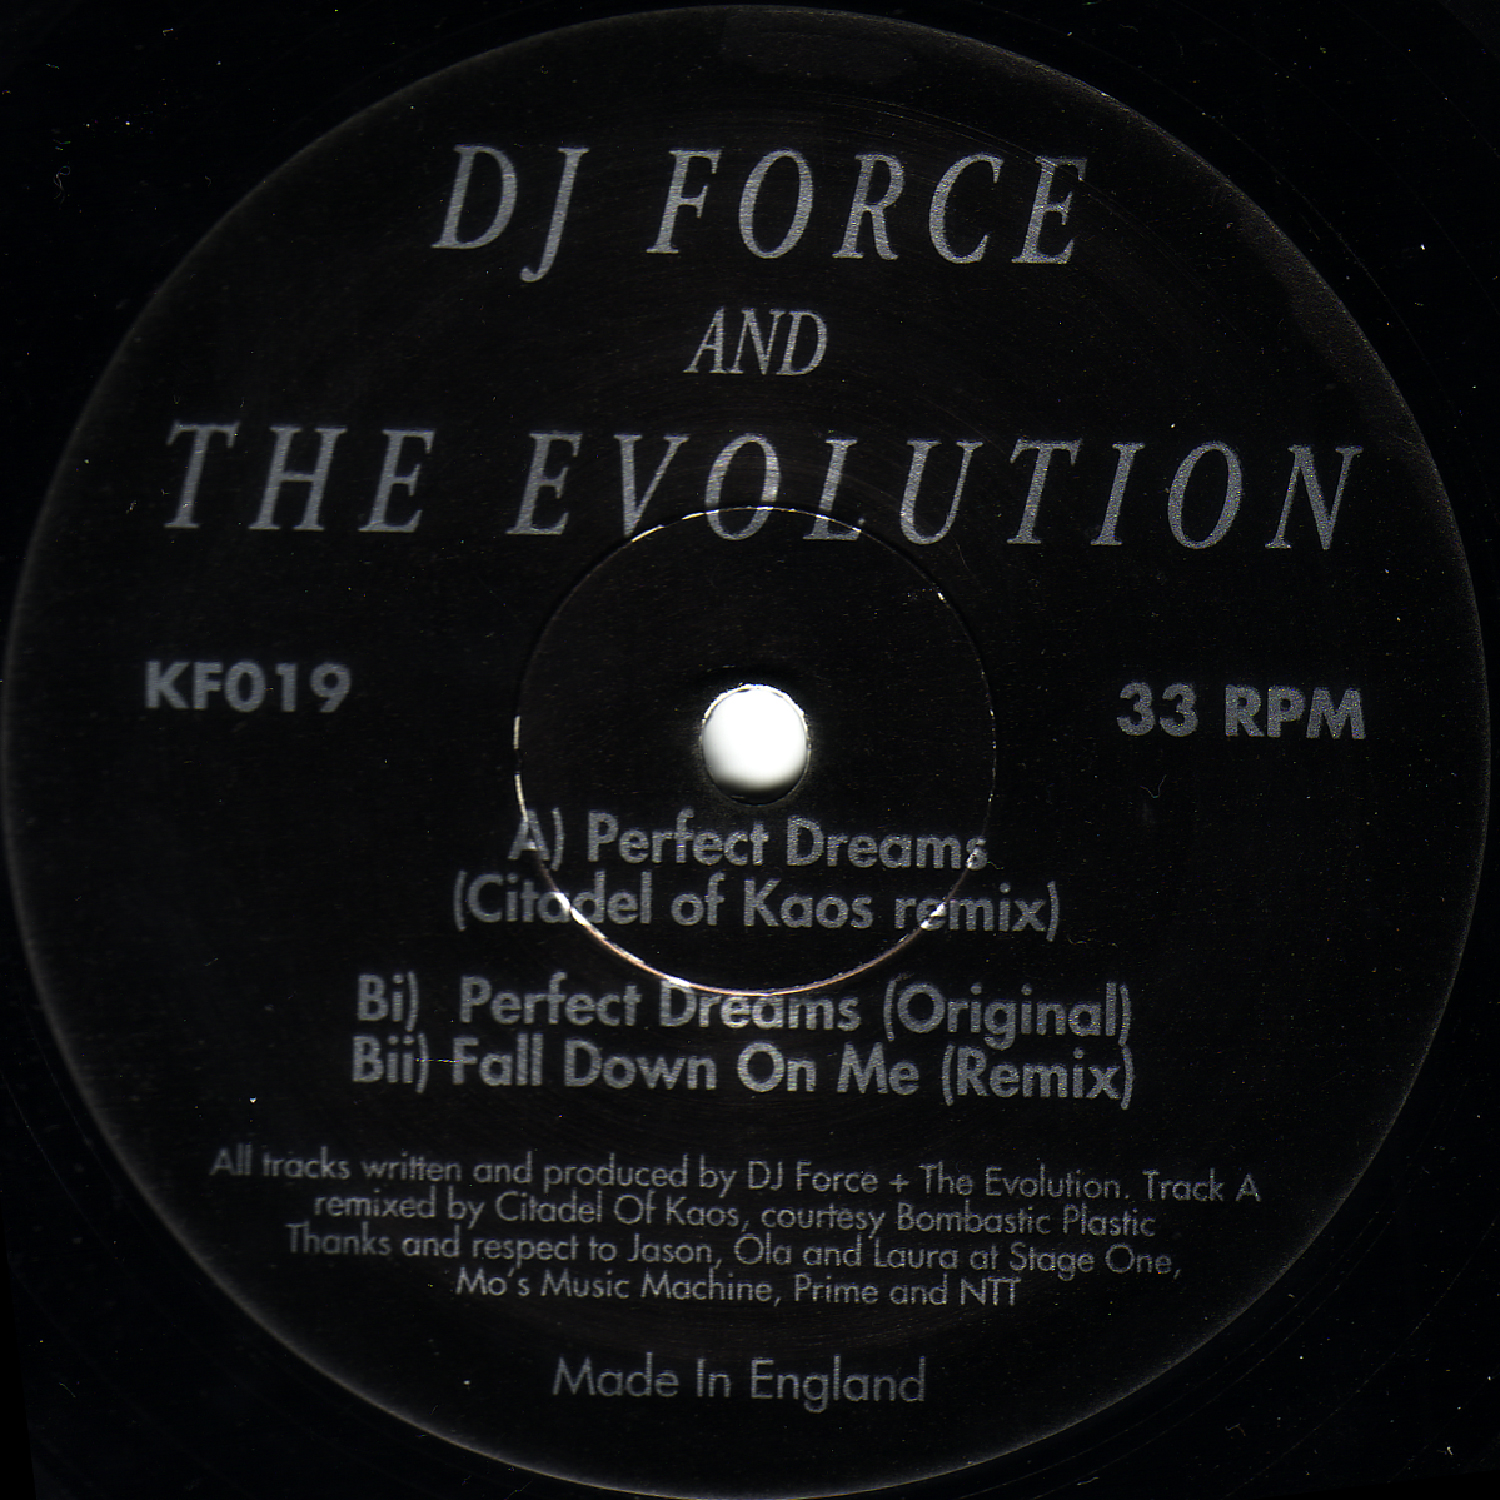 [KF019] DJ Force & The Evolution - Perfect Dreams Remixes EP (Digital Only)